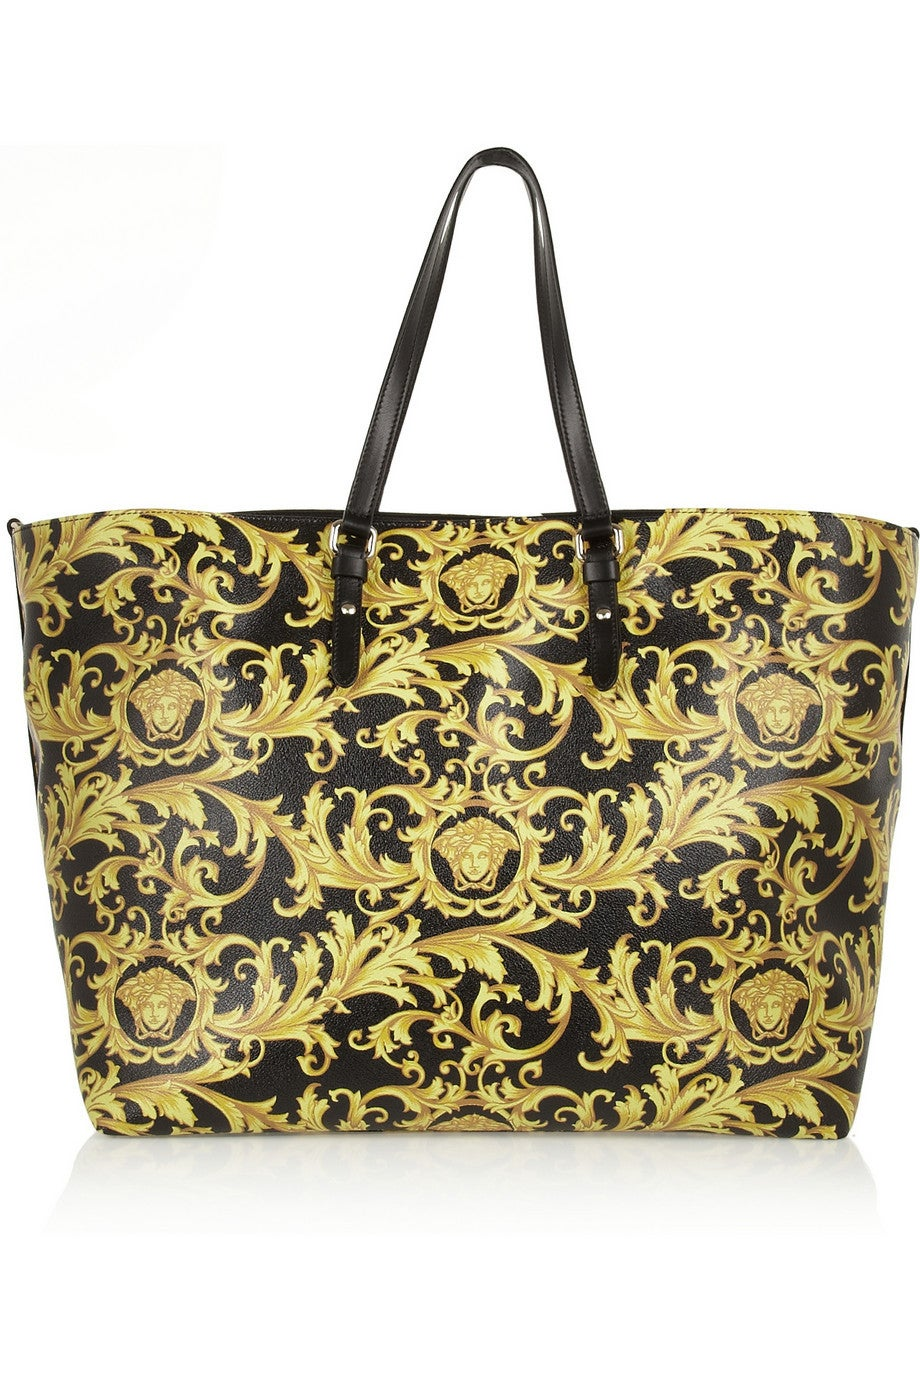 Coach Ava Tote in Signature Brown/Black/Gold F CONNEXITY. COACH AVA TOTE SHOULDER BAG. #NowTrending. NEW COACH (F) SIGNATURE EMBOSSED LEATHER NUDE PINK AVA ZIP TOTE BAG HANDBAGCoachAll Handbags come BRAND NEW with Original Tags! read more. See at Walmart.